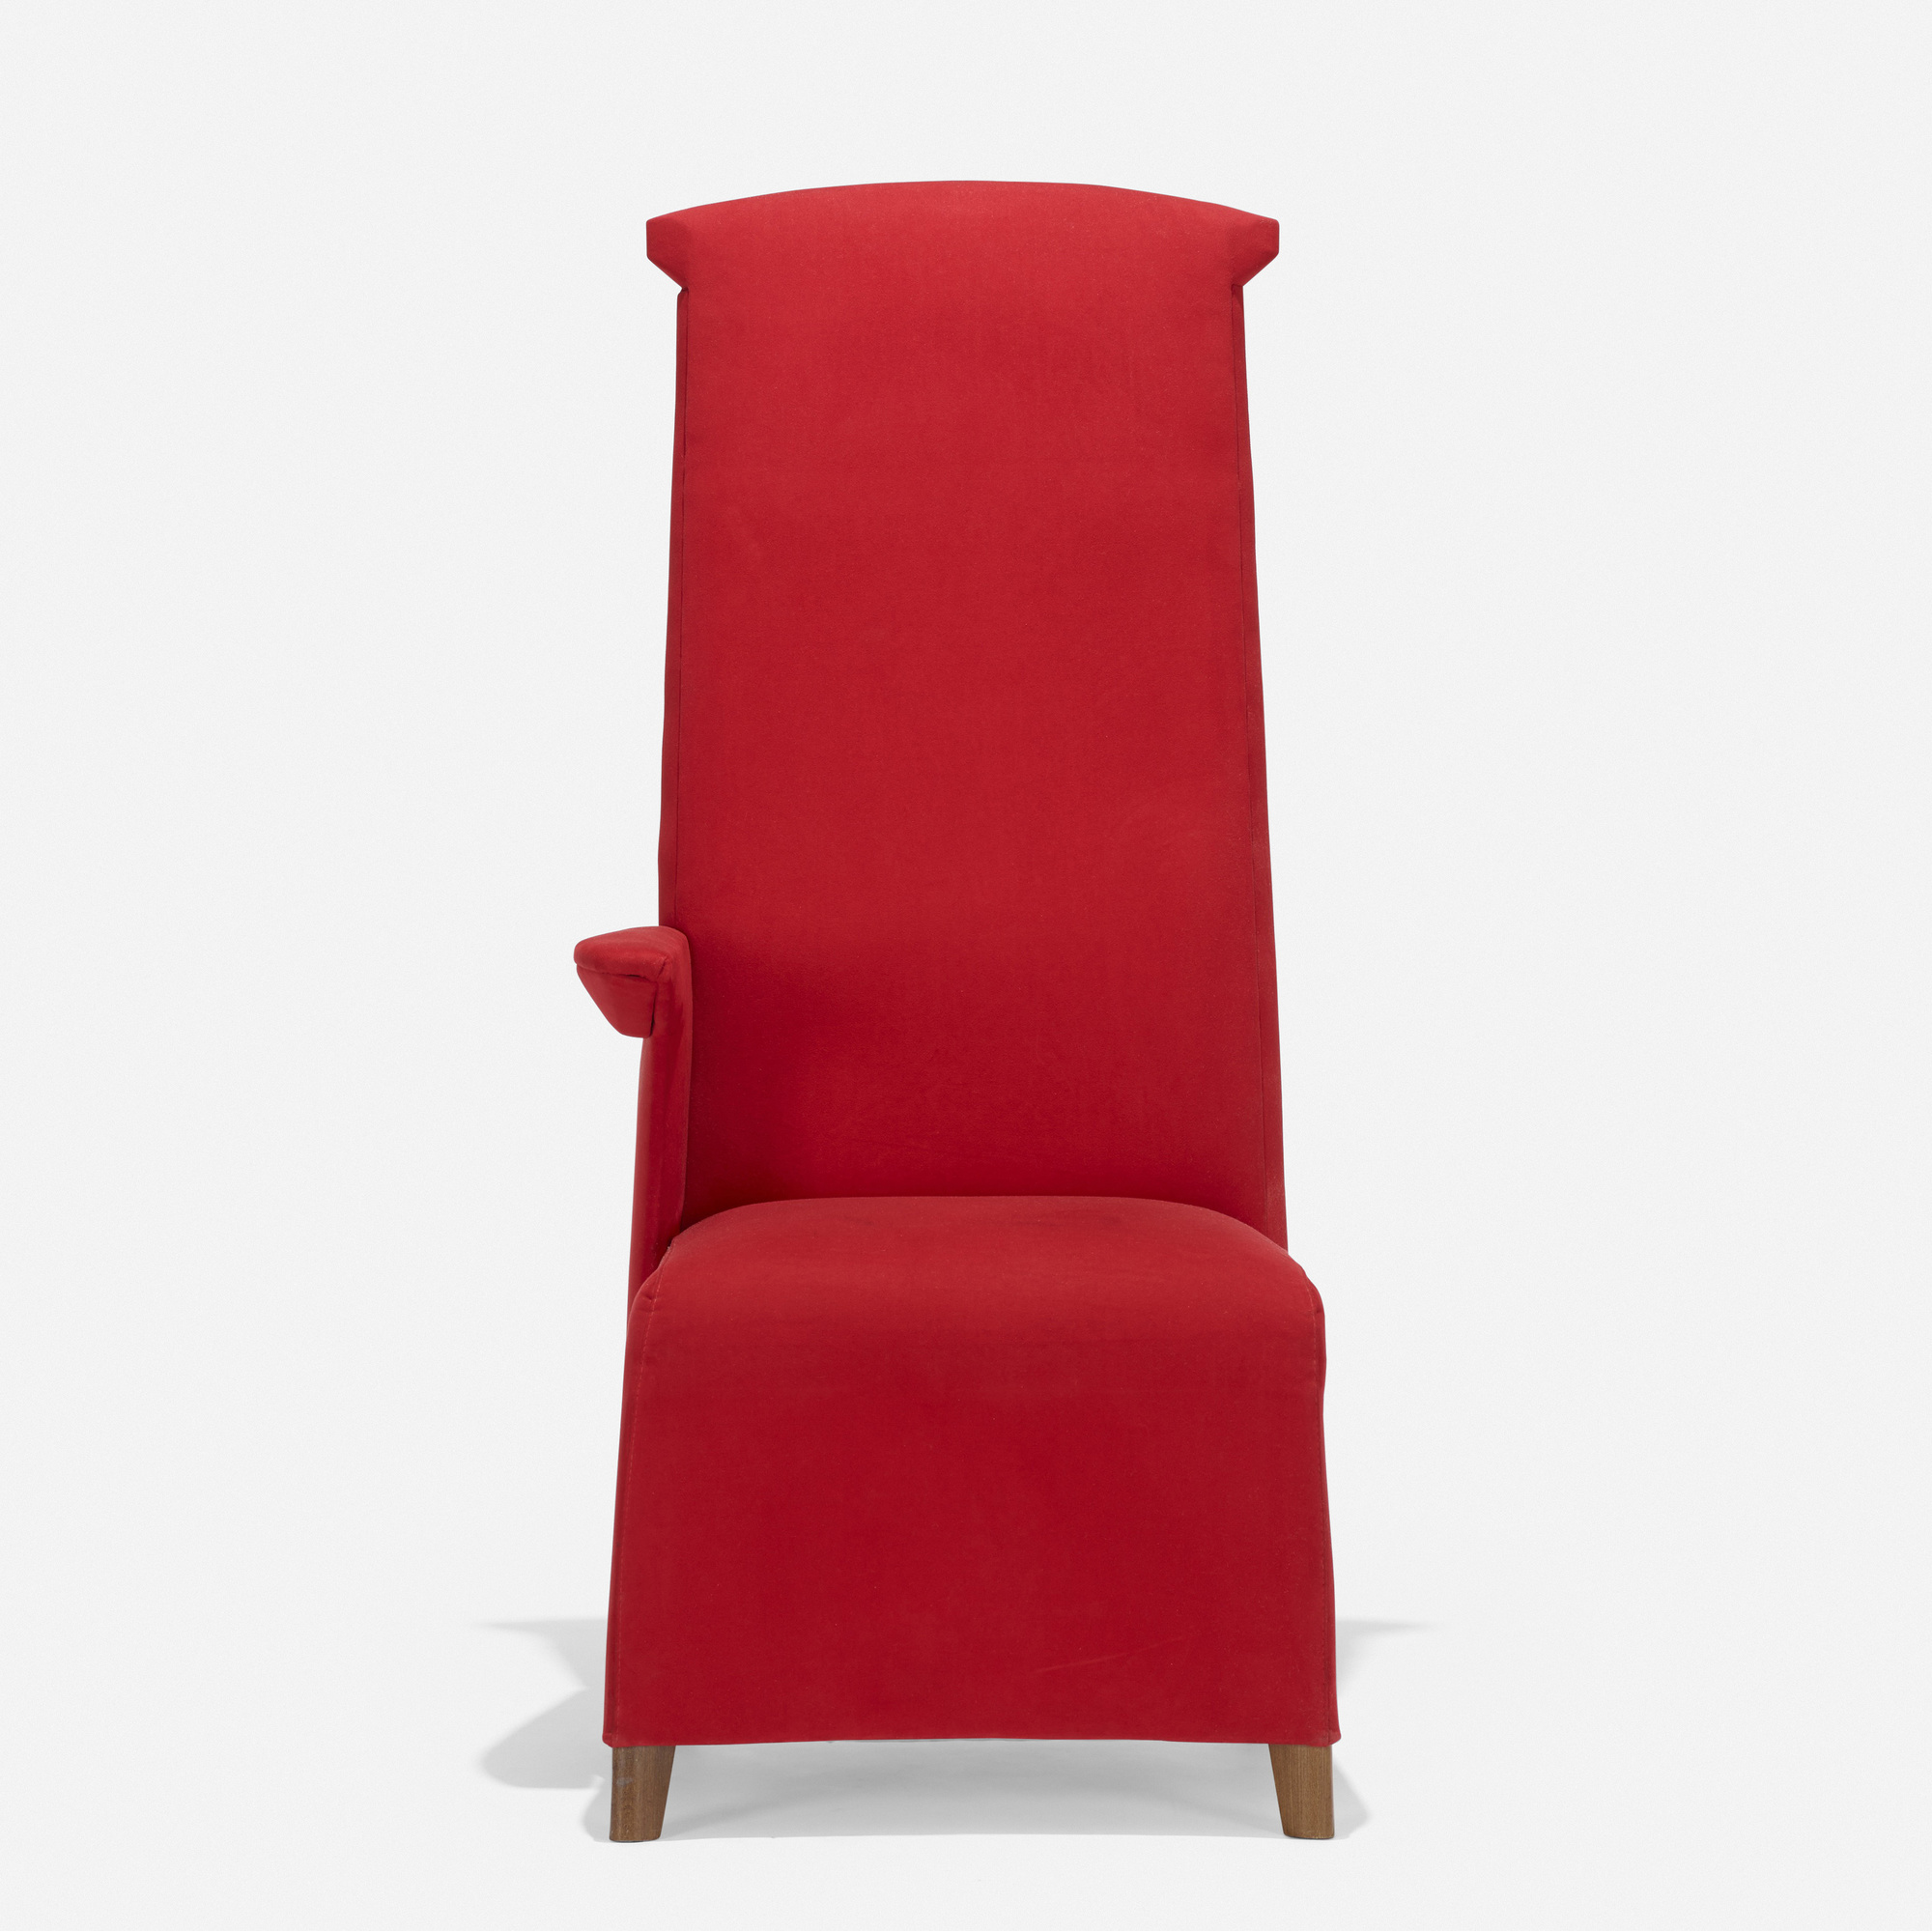 390: Lievore Altherr Molina / Manolete chair (2 of 3)